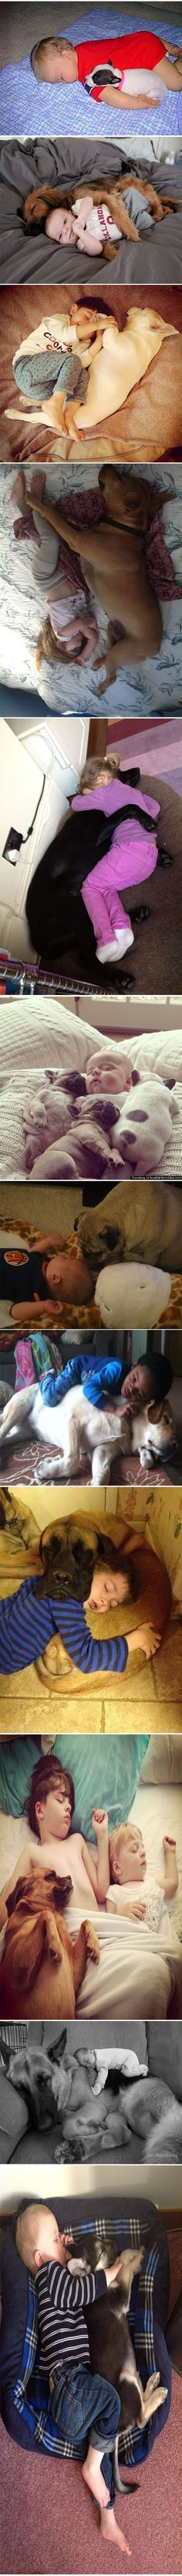 i don't want a dog but oh my, these pictures are everywhere right now and they're melting my icy heart...